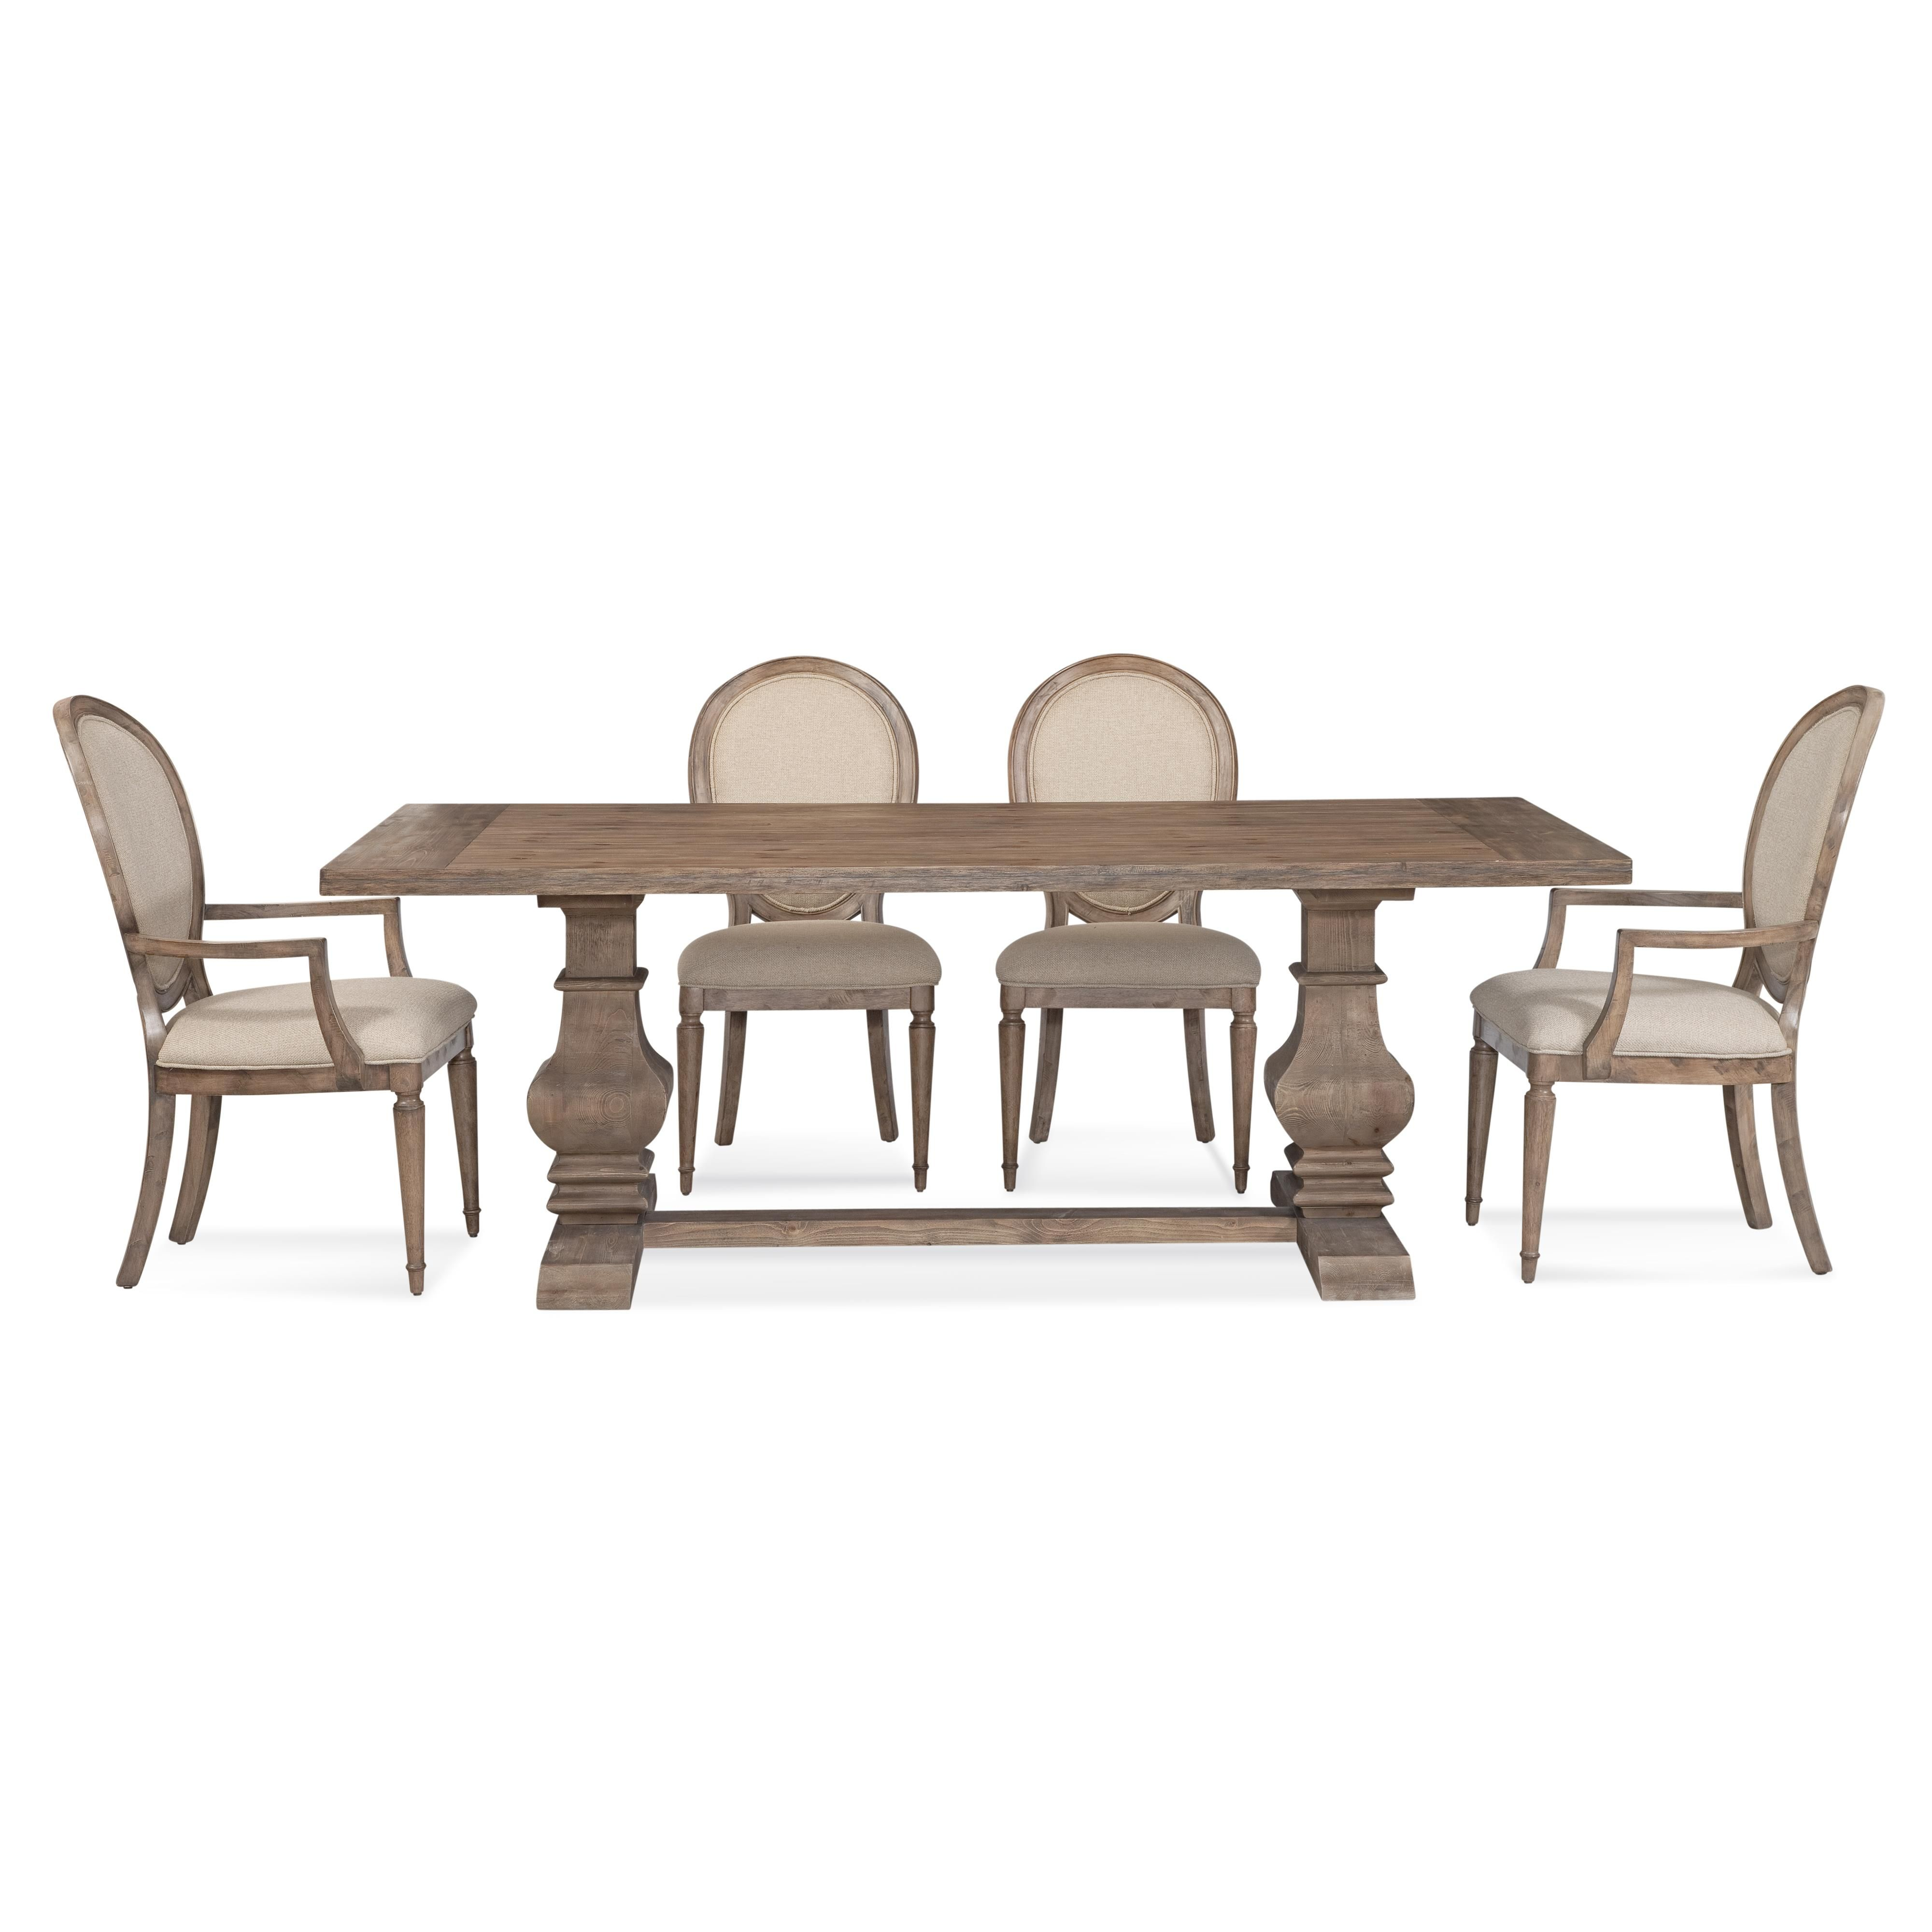 Belgian luxe kinzie casual dining set by bassett mirror dining room belgian luxe kinzie casual dining set by bassett mirror dzzzfo